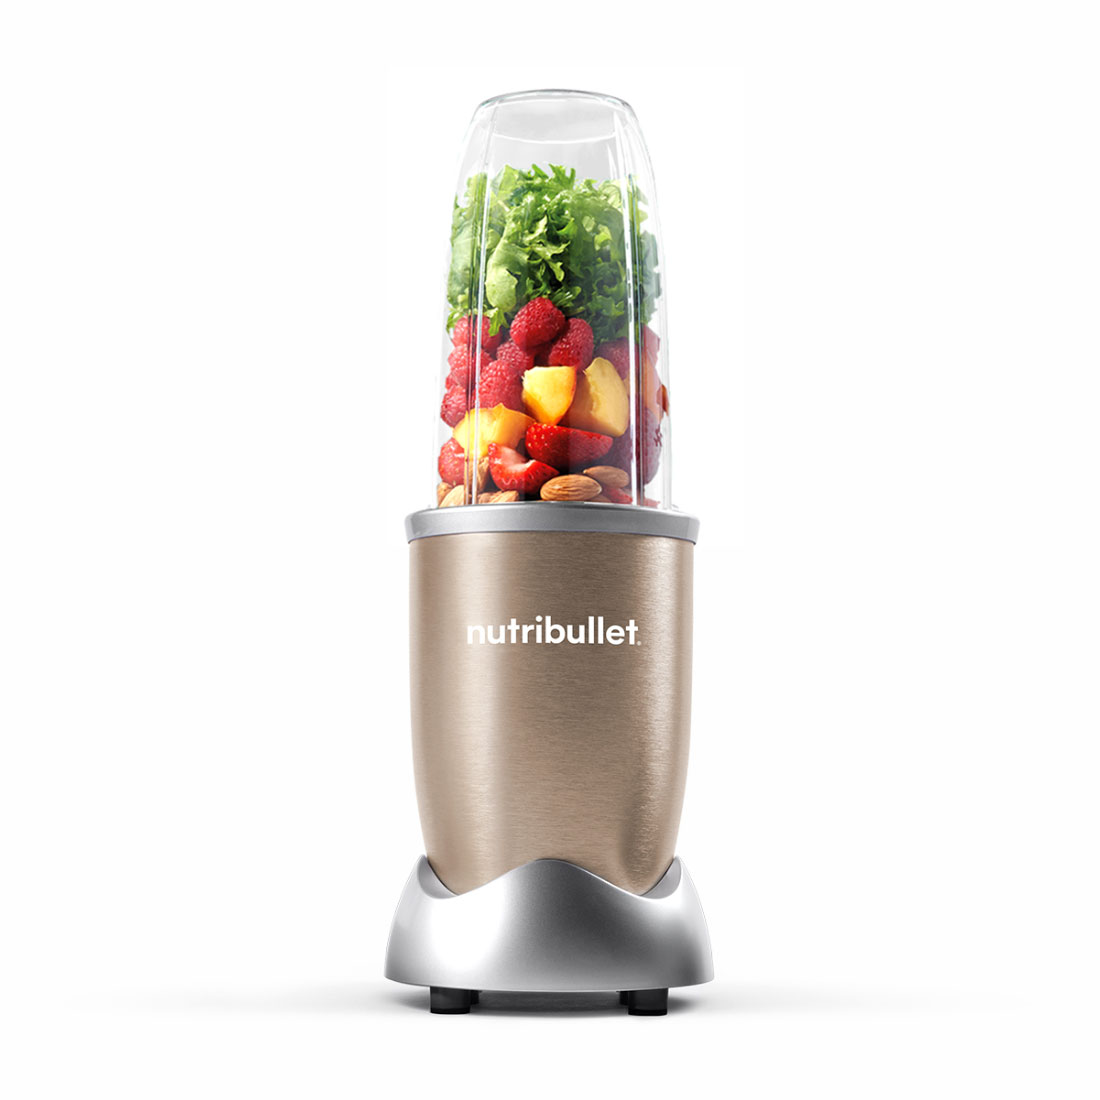 An image of NutriBullet 900 Series